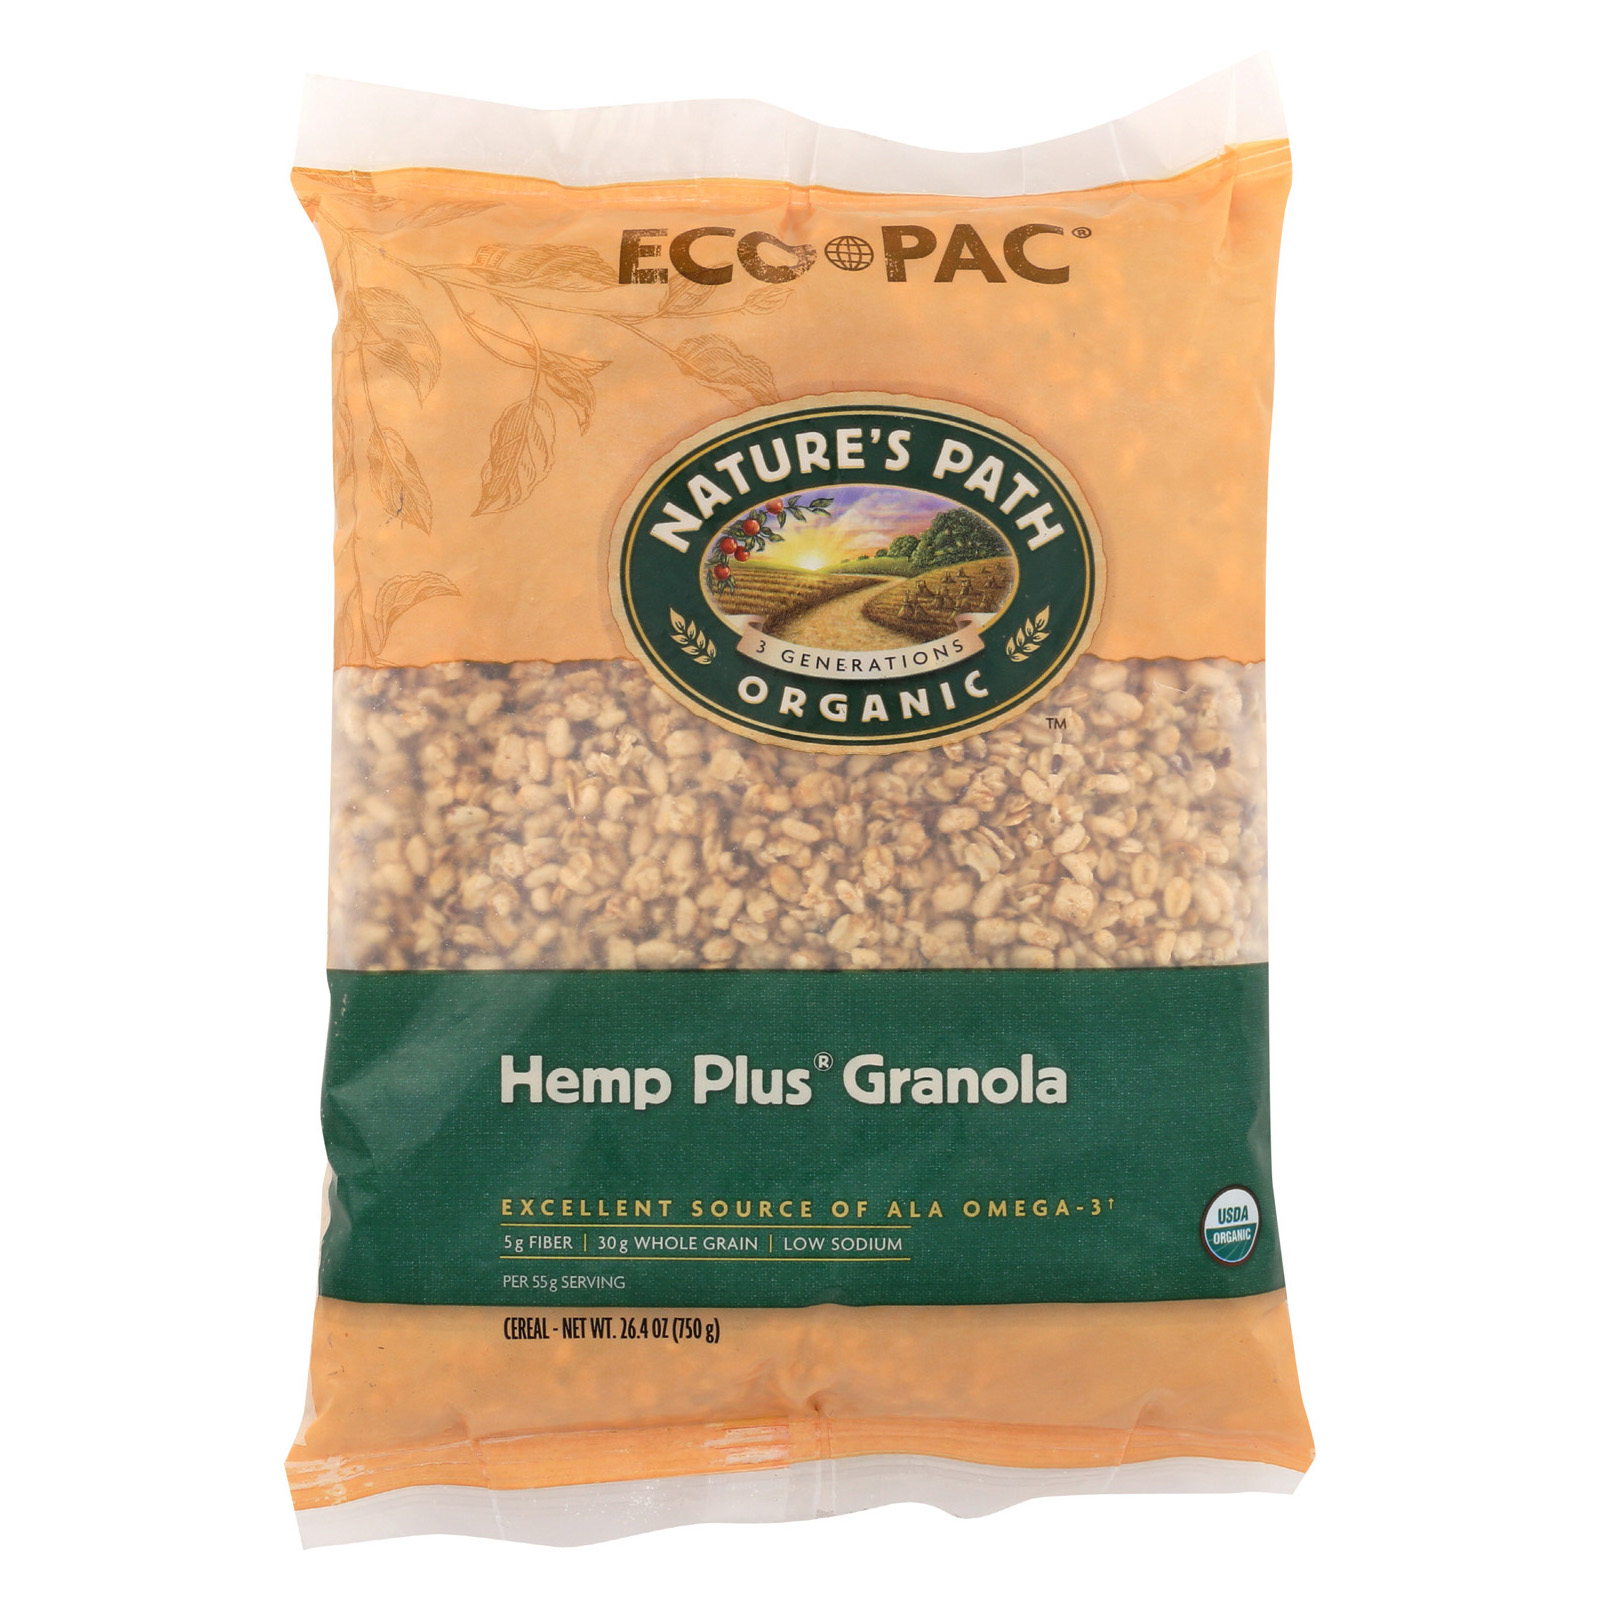 Cucina Antica Low Fat Italiano Nature S Path Organic Hemp Plus Granola Eco Pac Pack Of 6 26 4 Oz By Nature S Path Foods Wellspace